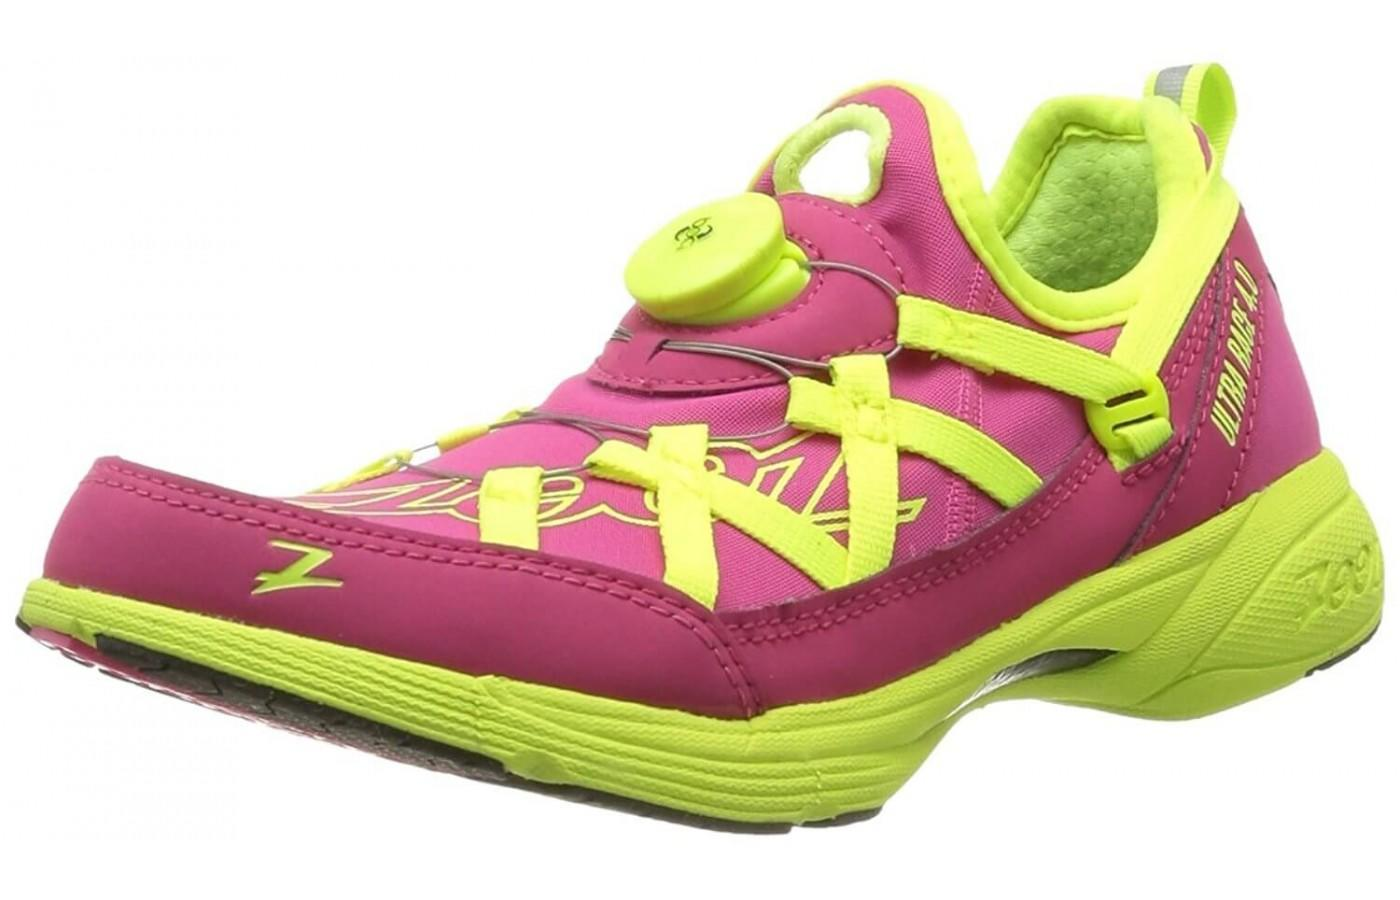 the Zoot Ultra Race 4.0 shown from the front/side